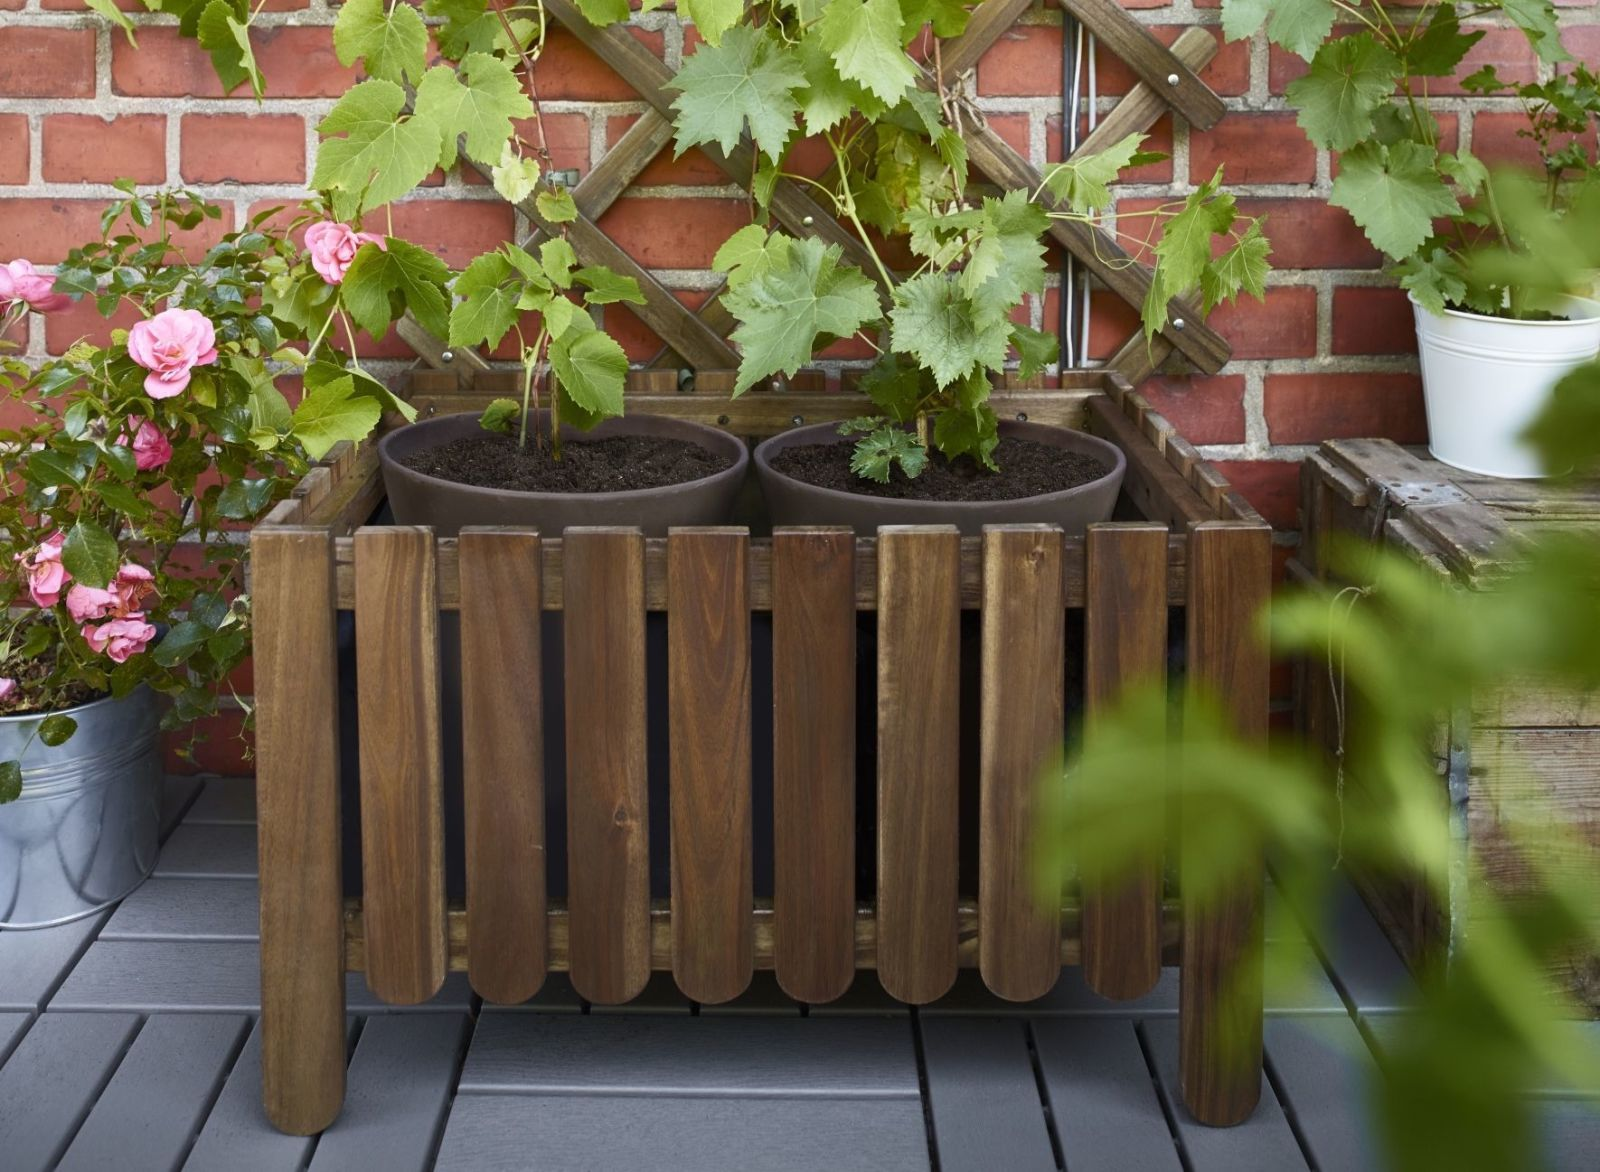 This Is The Best Way To Make A Long Flower Trough For Your Garden Or Patio.